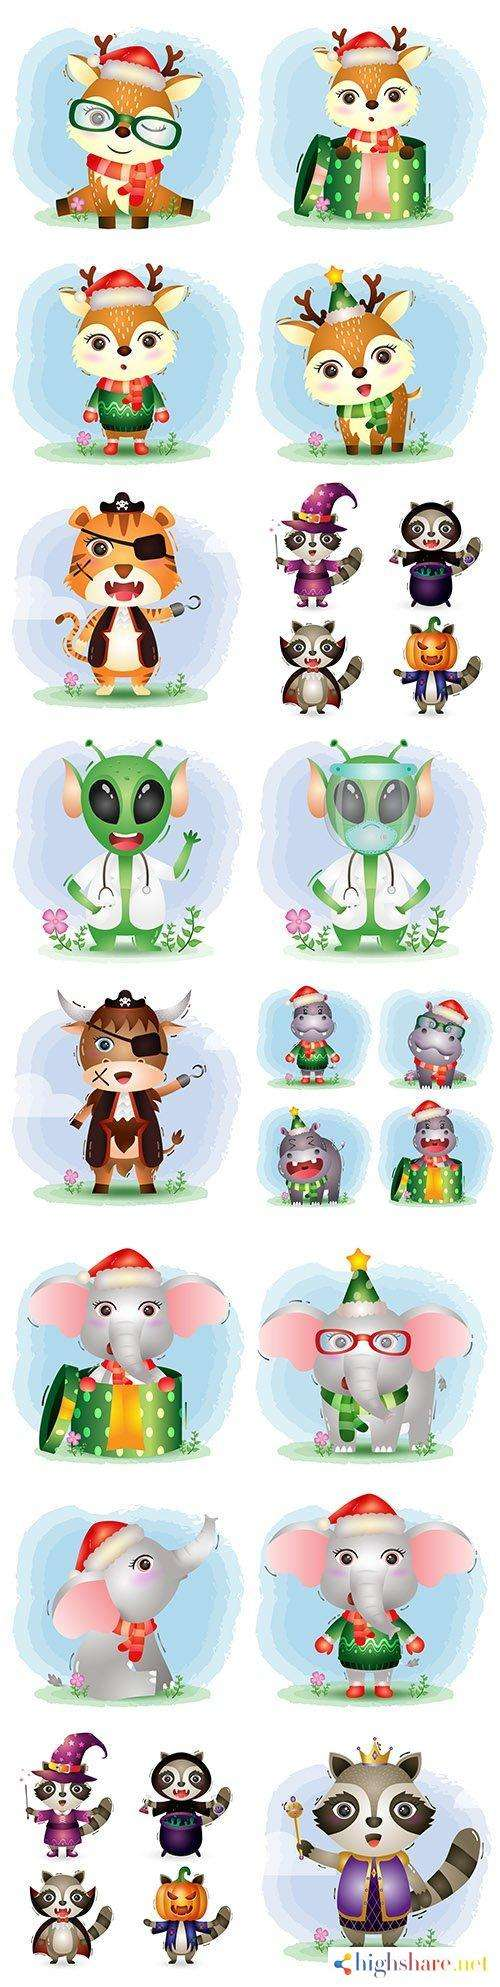 funny painted animals in carnival costumes for holiday 5f412e9b9edd3 - Funny painted animals in carnival costumes for holiday